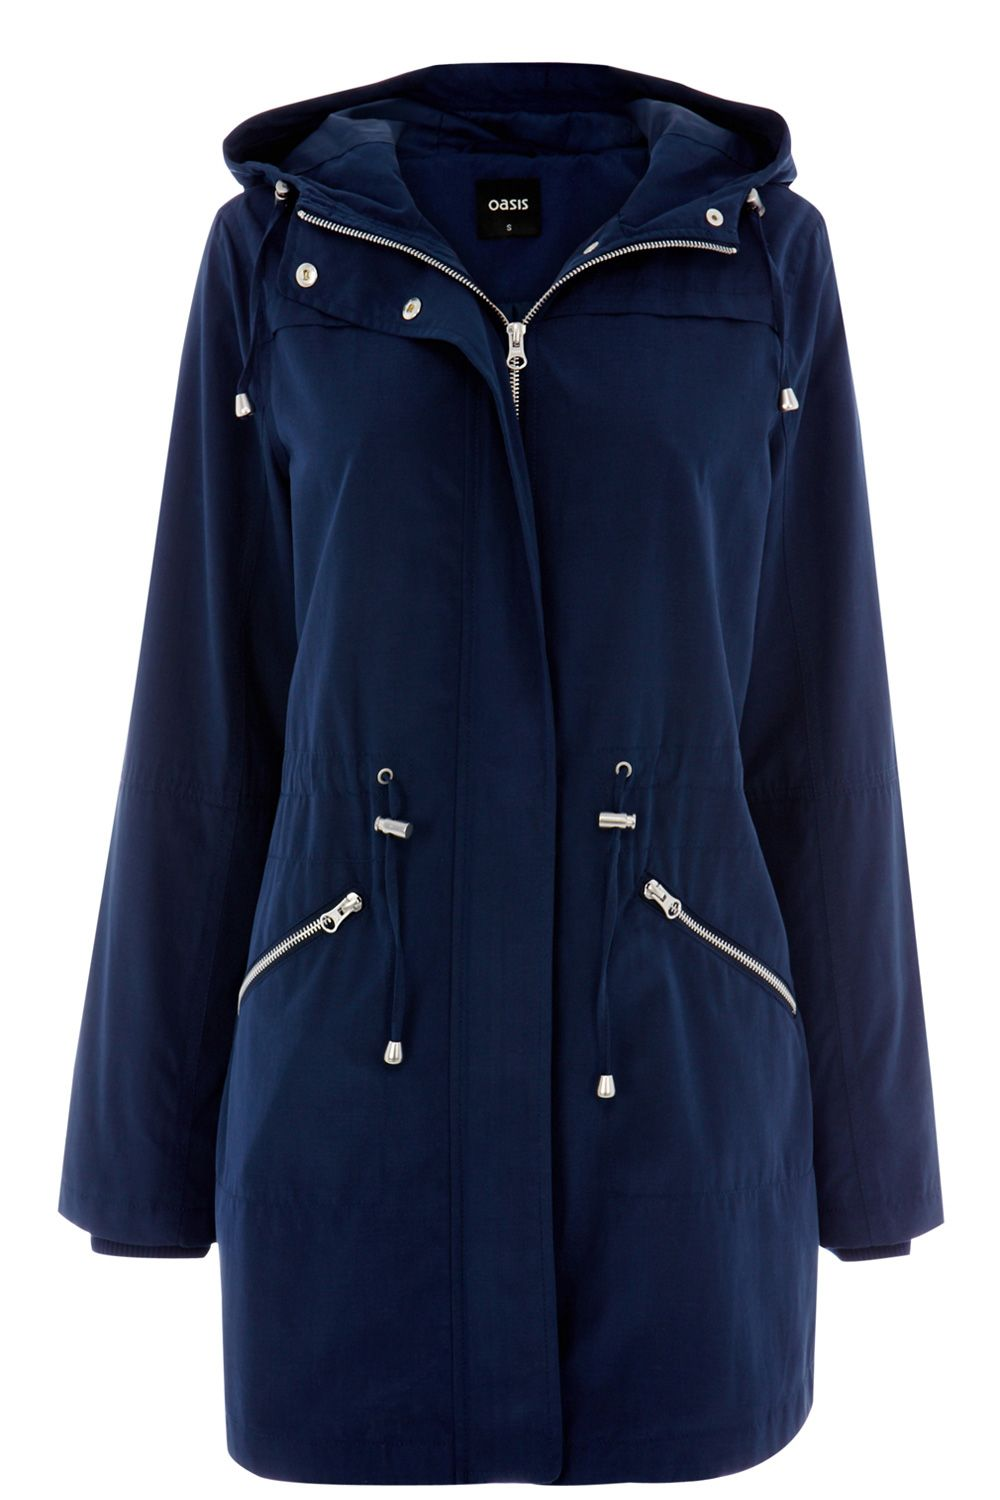 Hollie lightweight parka